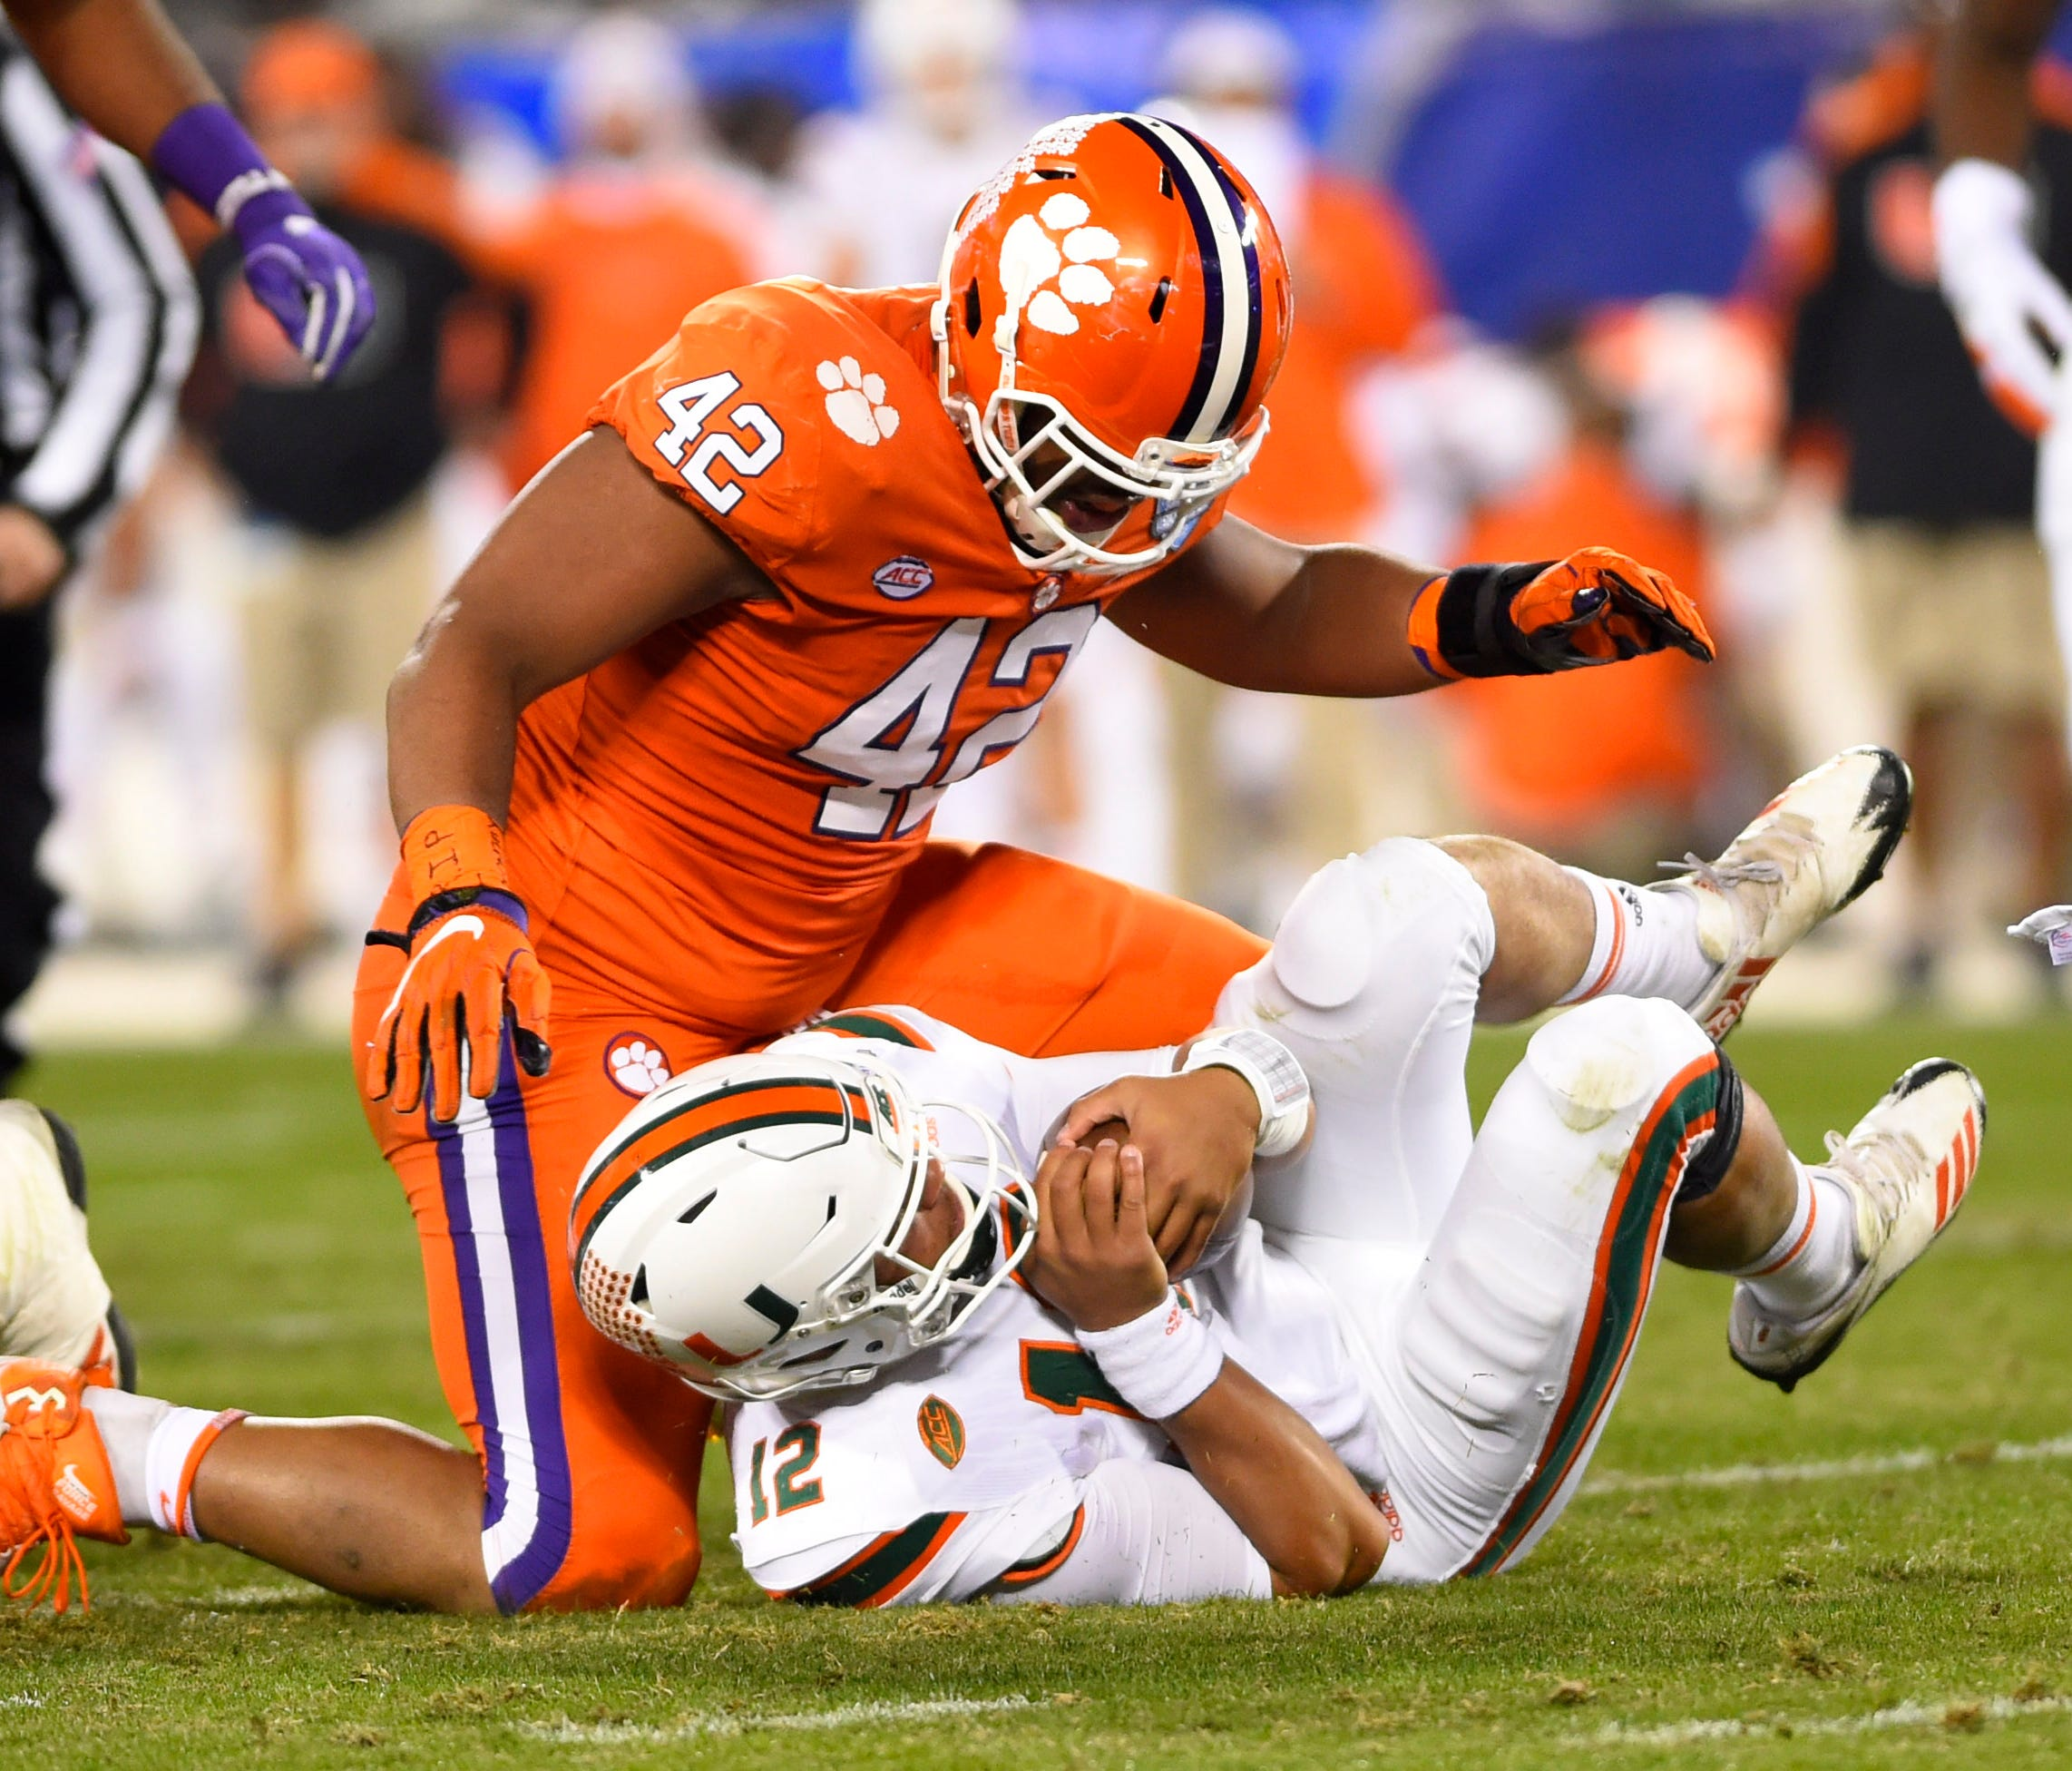 Clemson defensive lineman Christian Wilkins sacks Miami (Fla.) quarterback Malik Rosier during the ACC championship game in 2017.